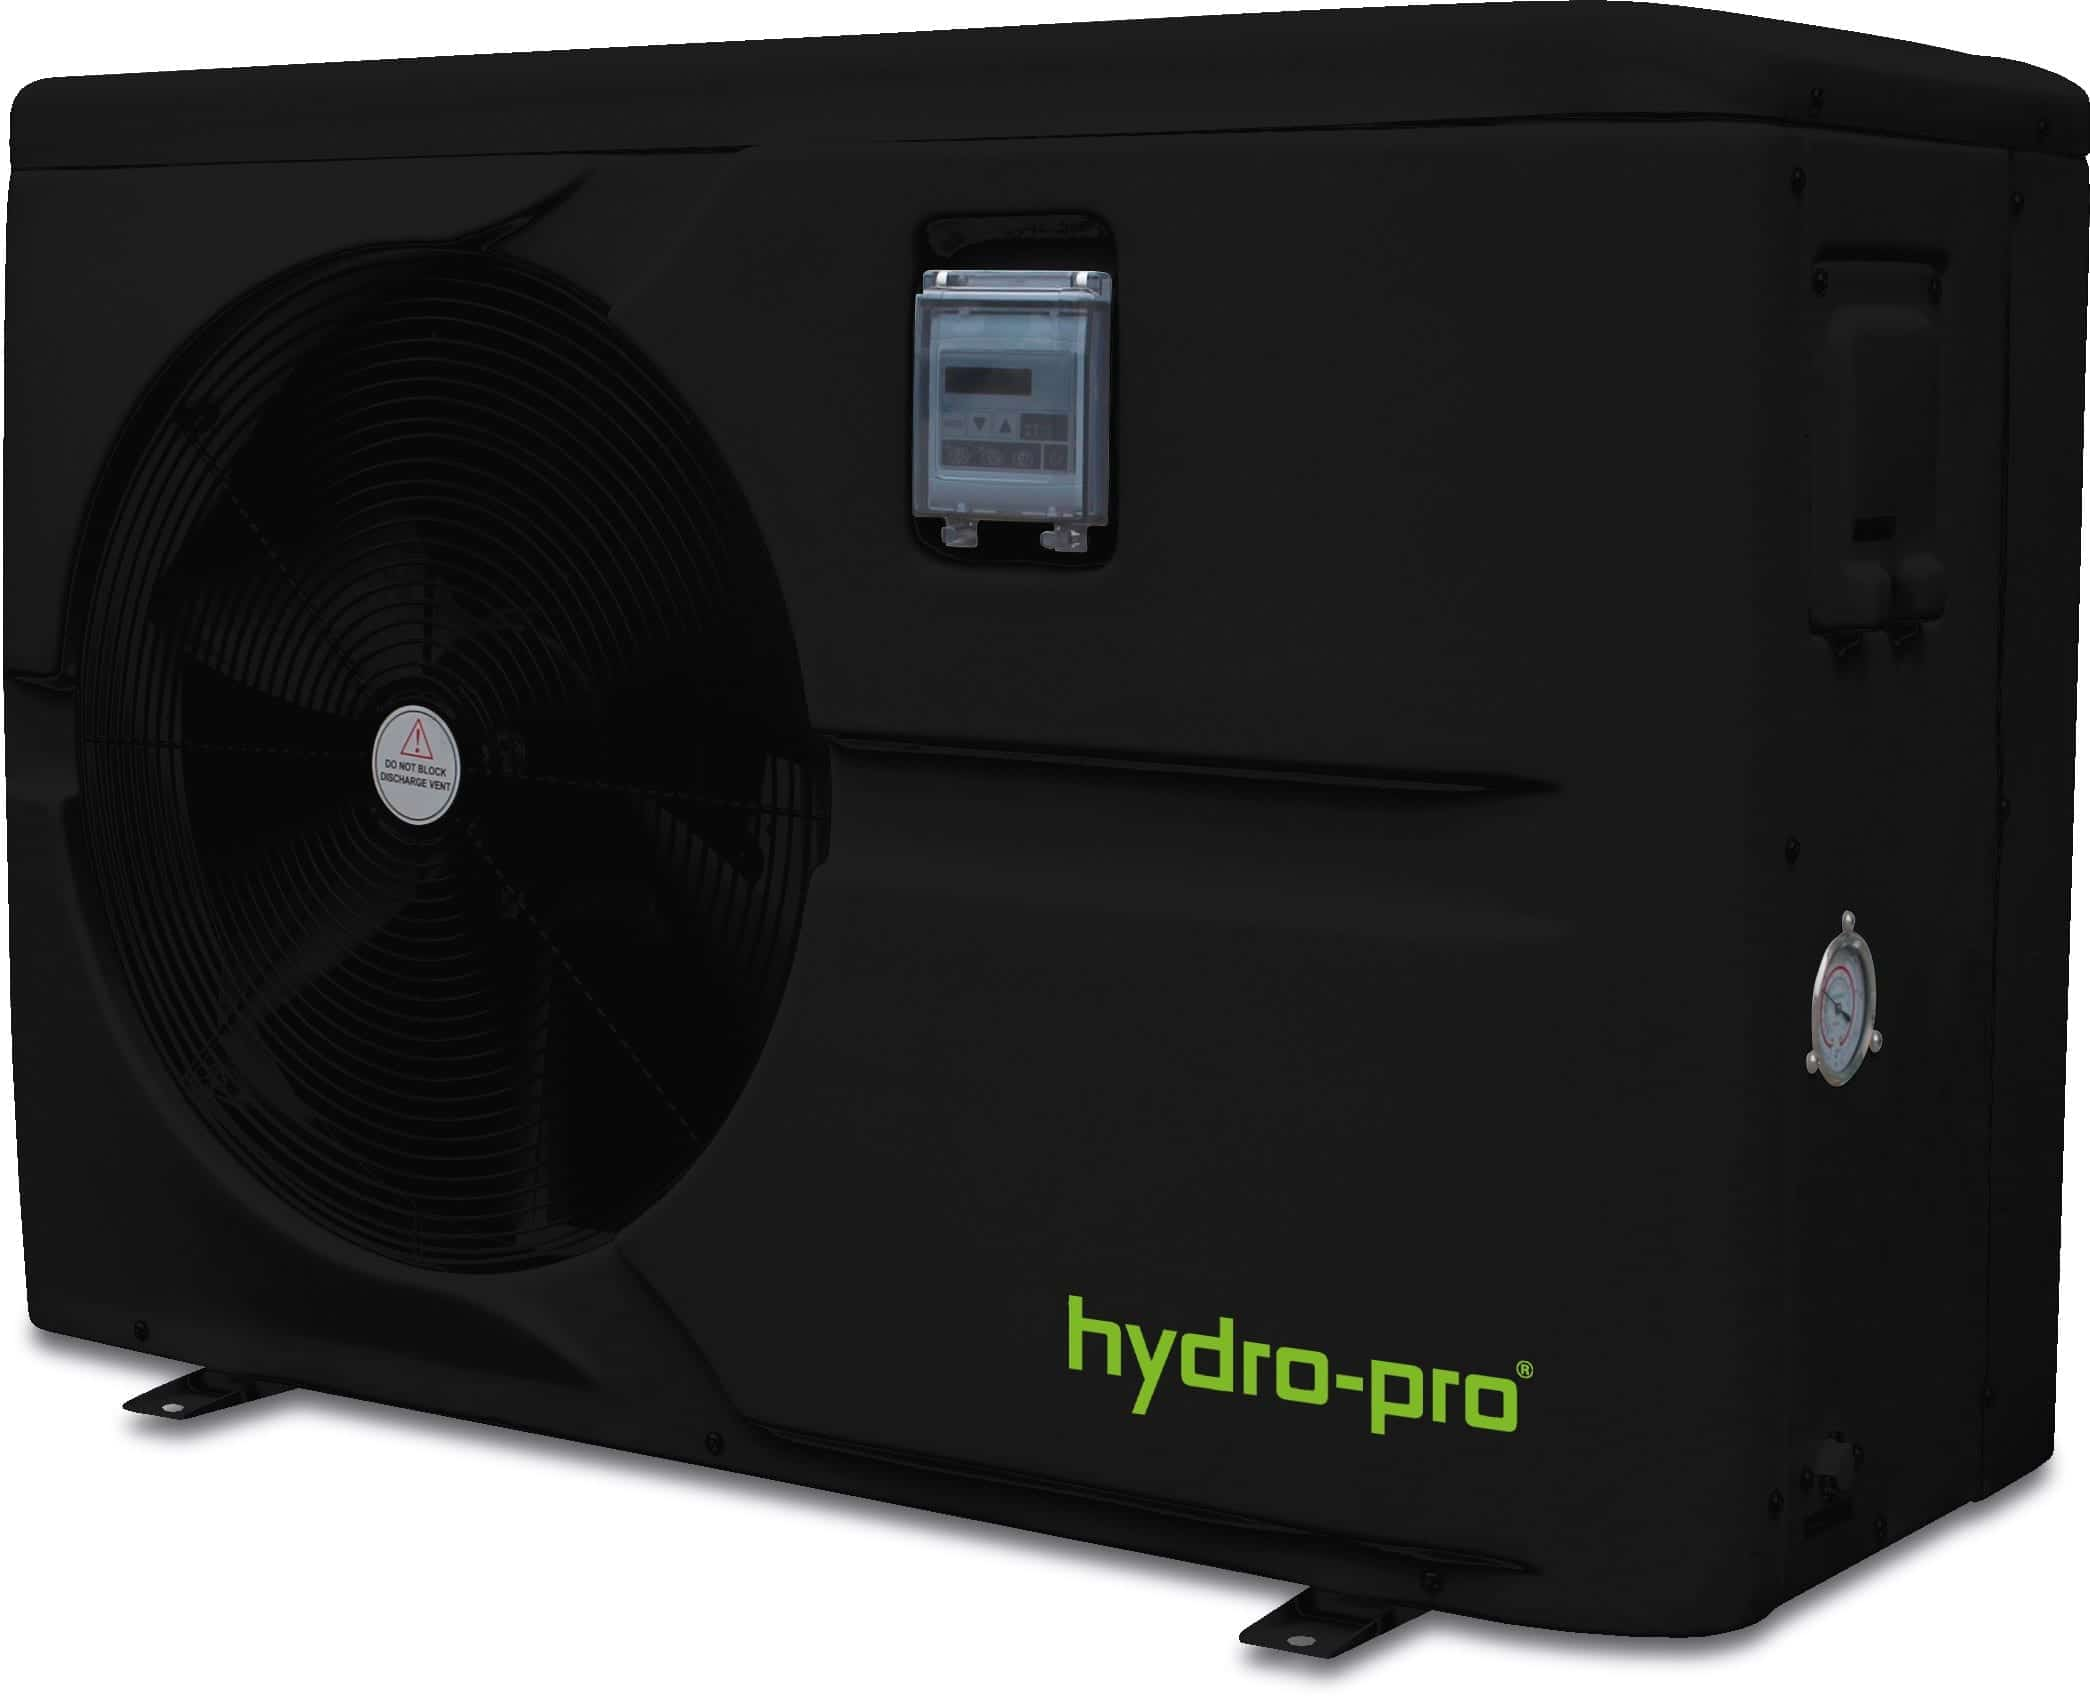 Hydro-ProSwimming Pool Heat Pumps